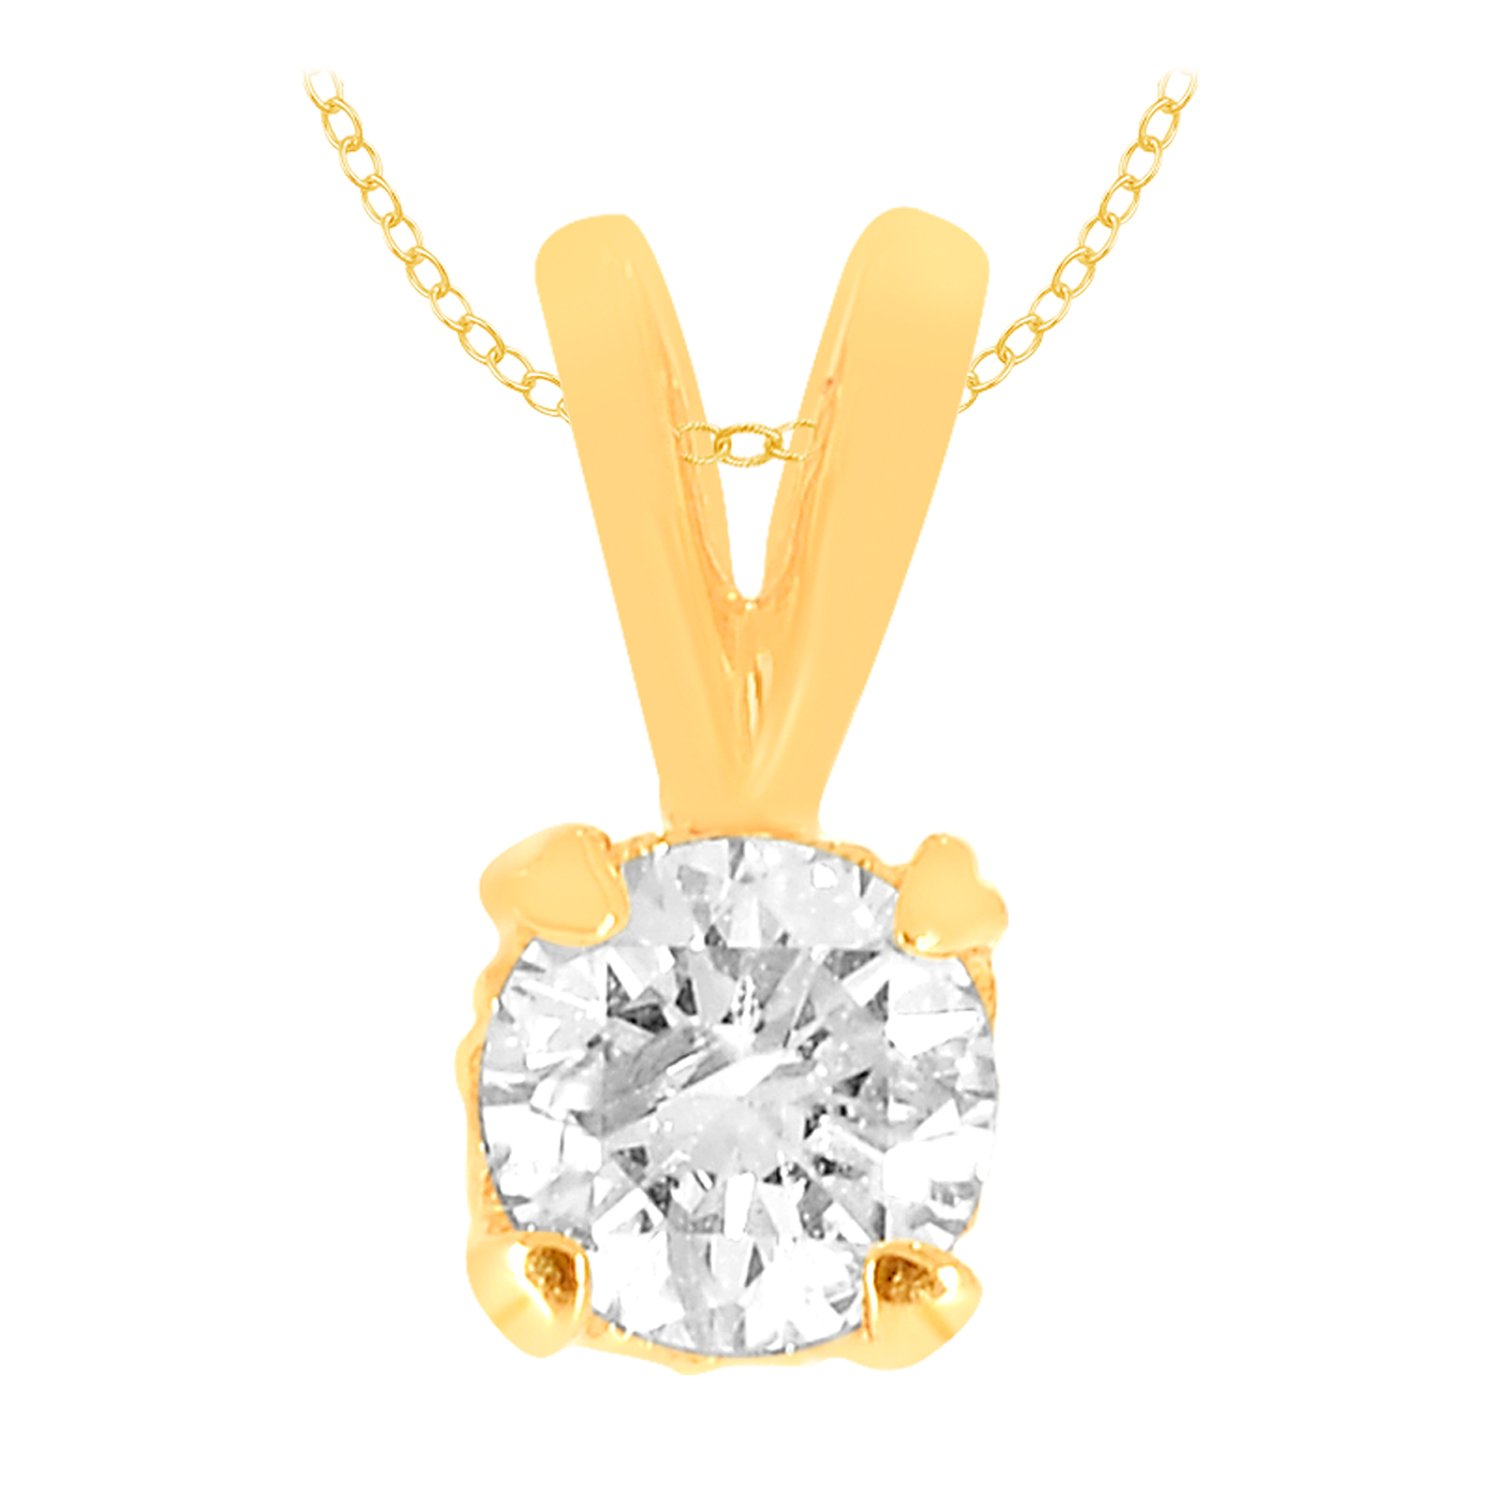 0.16 cttw 14k Gold Round Diamond Solitaire Pendant Necklace H-I Color I1-I2 Clarity (yellow-gold)